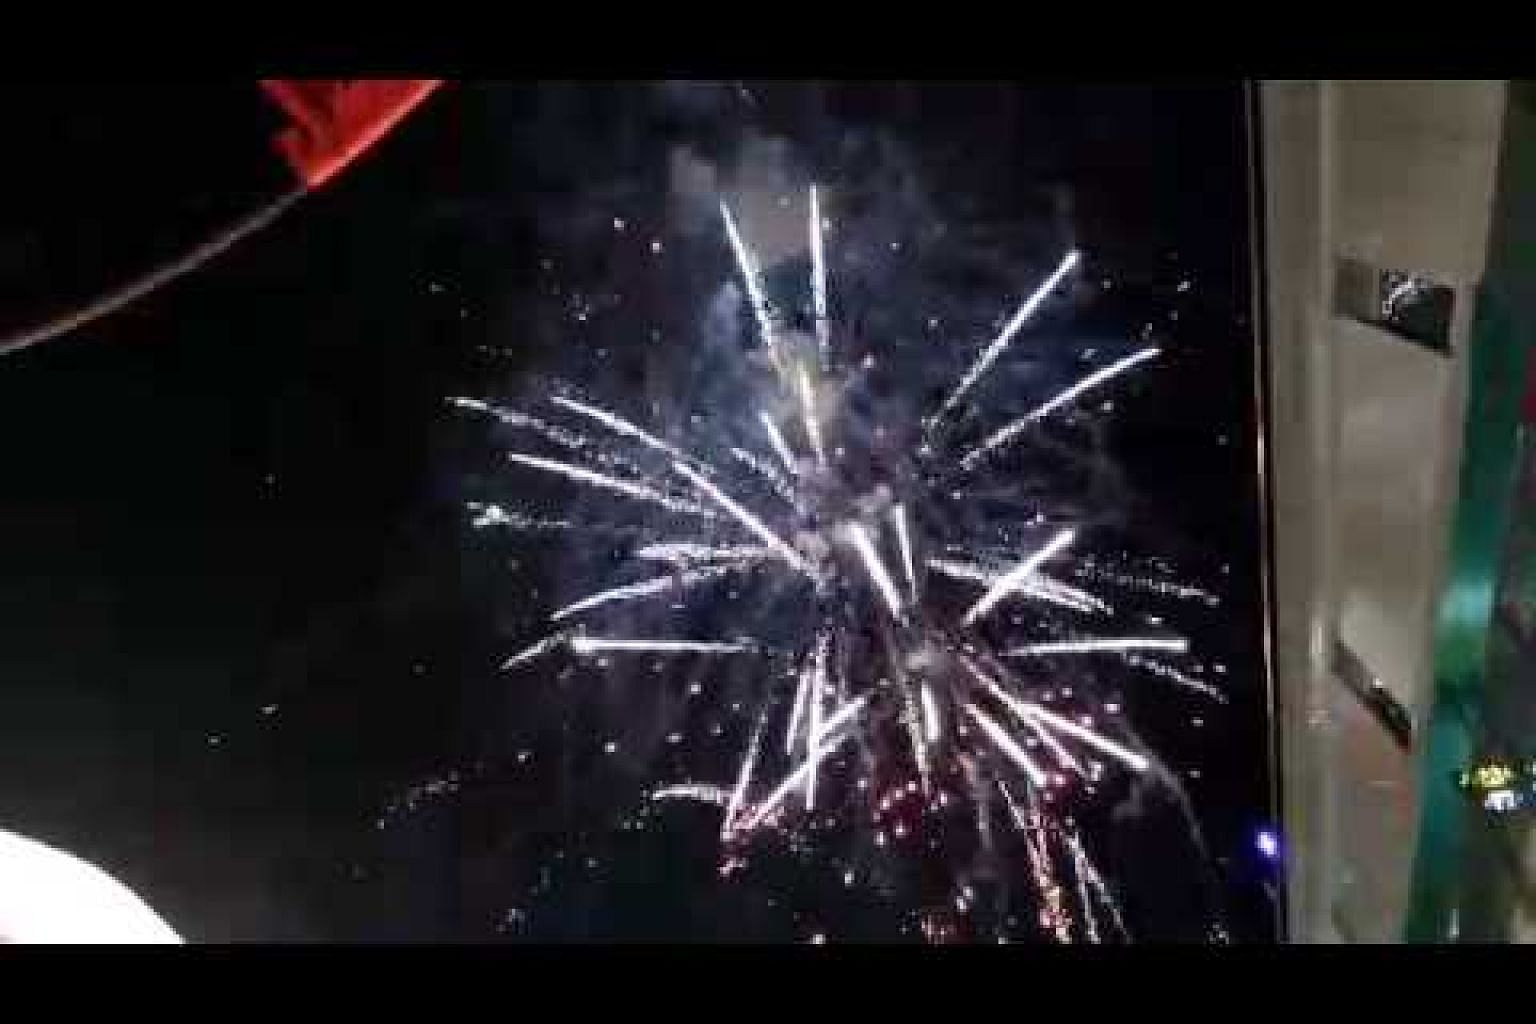 Fireworks on the second day of the Singapore Coffee Festival 2017